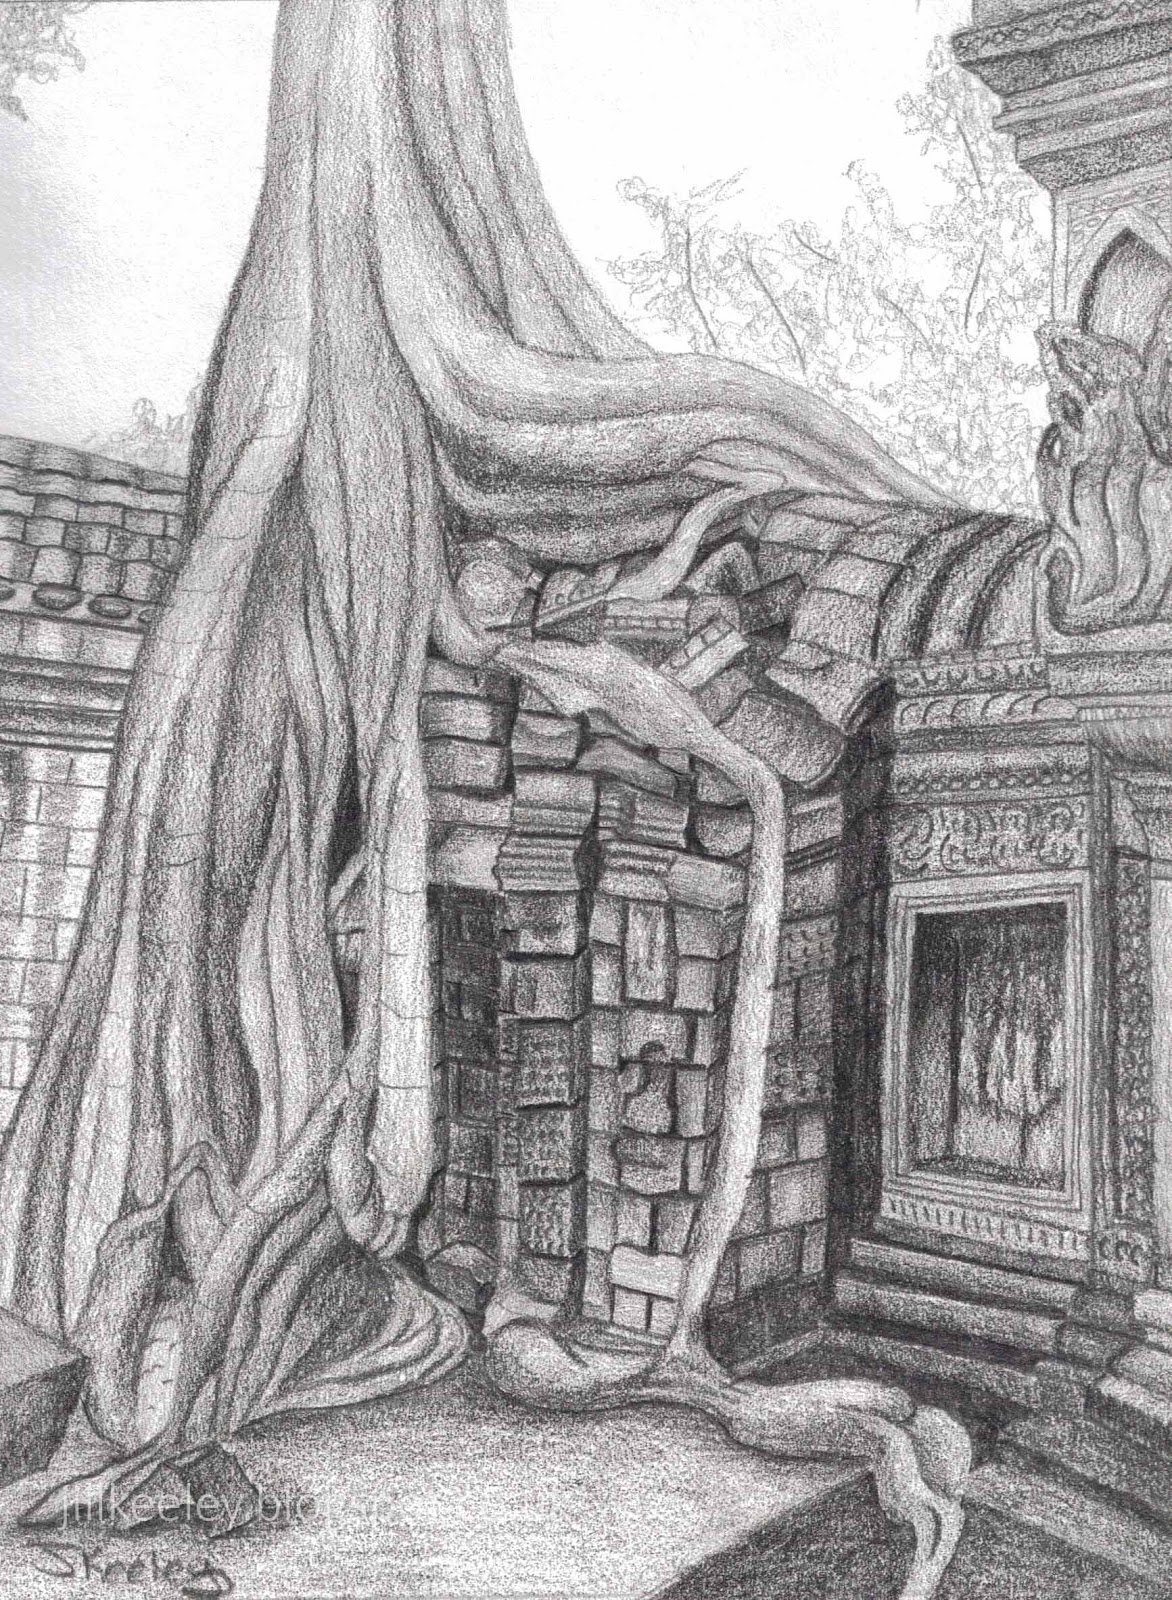 It's just an image of Ambitious Angkor Wat Drawing